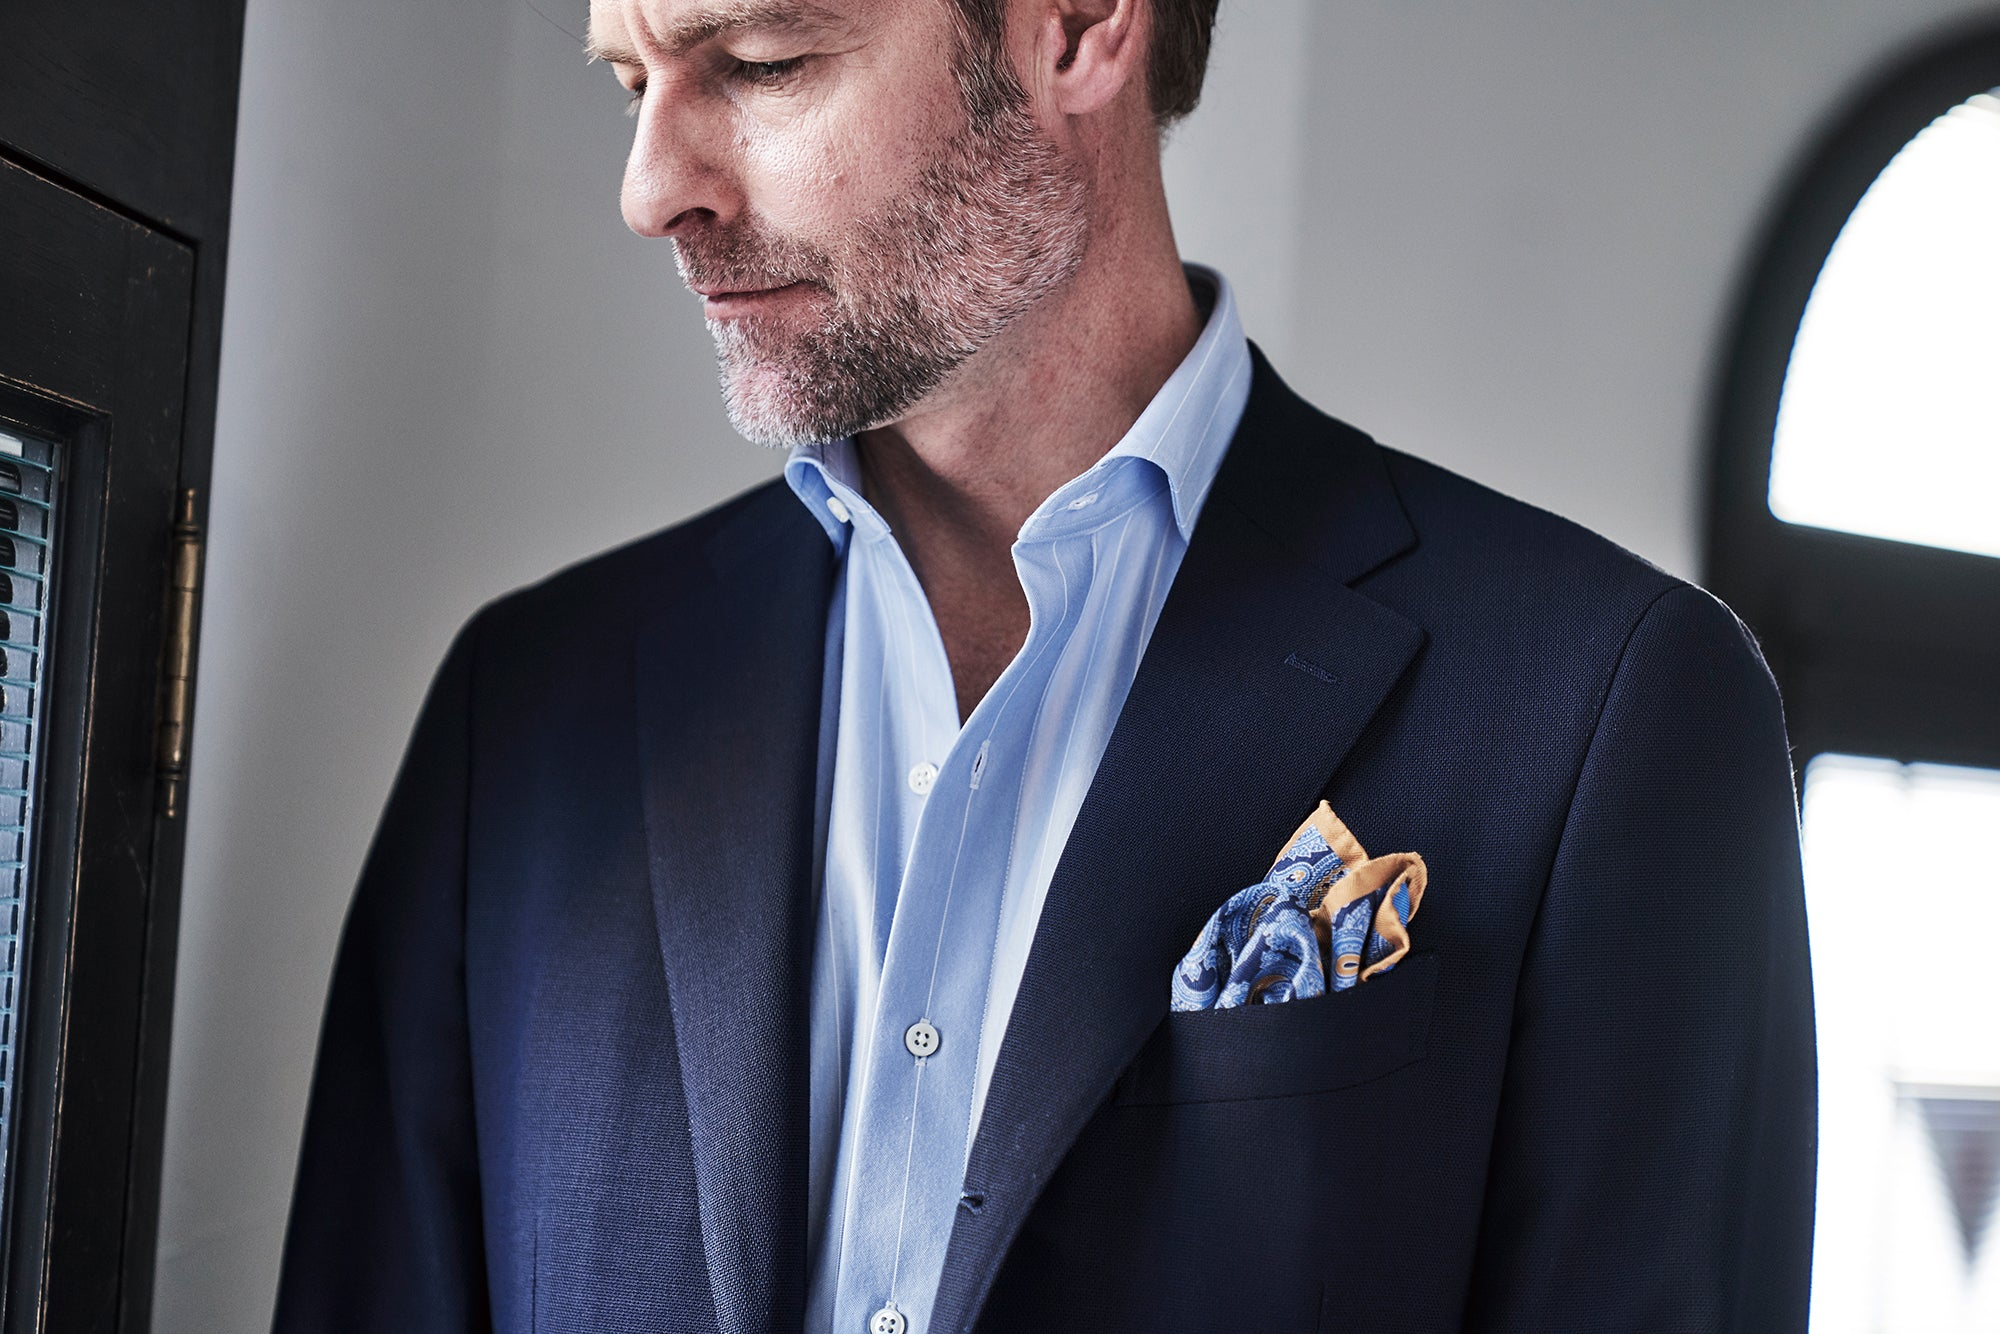 Man looking down in a jersey dress shirt and blazer